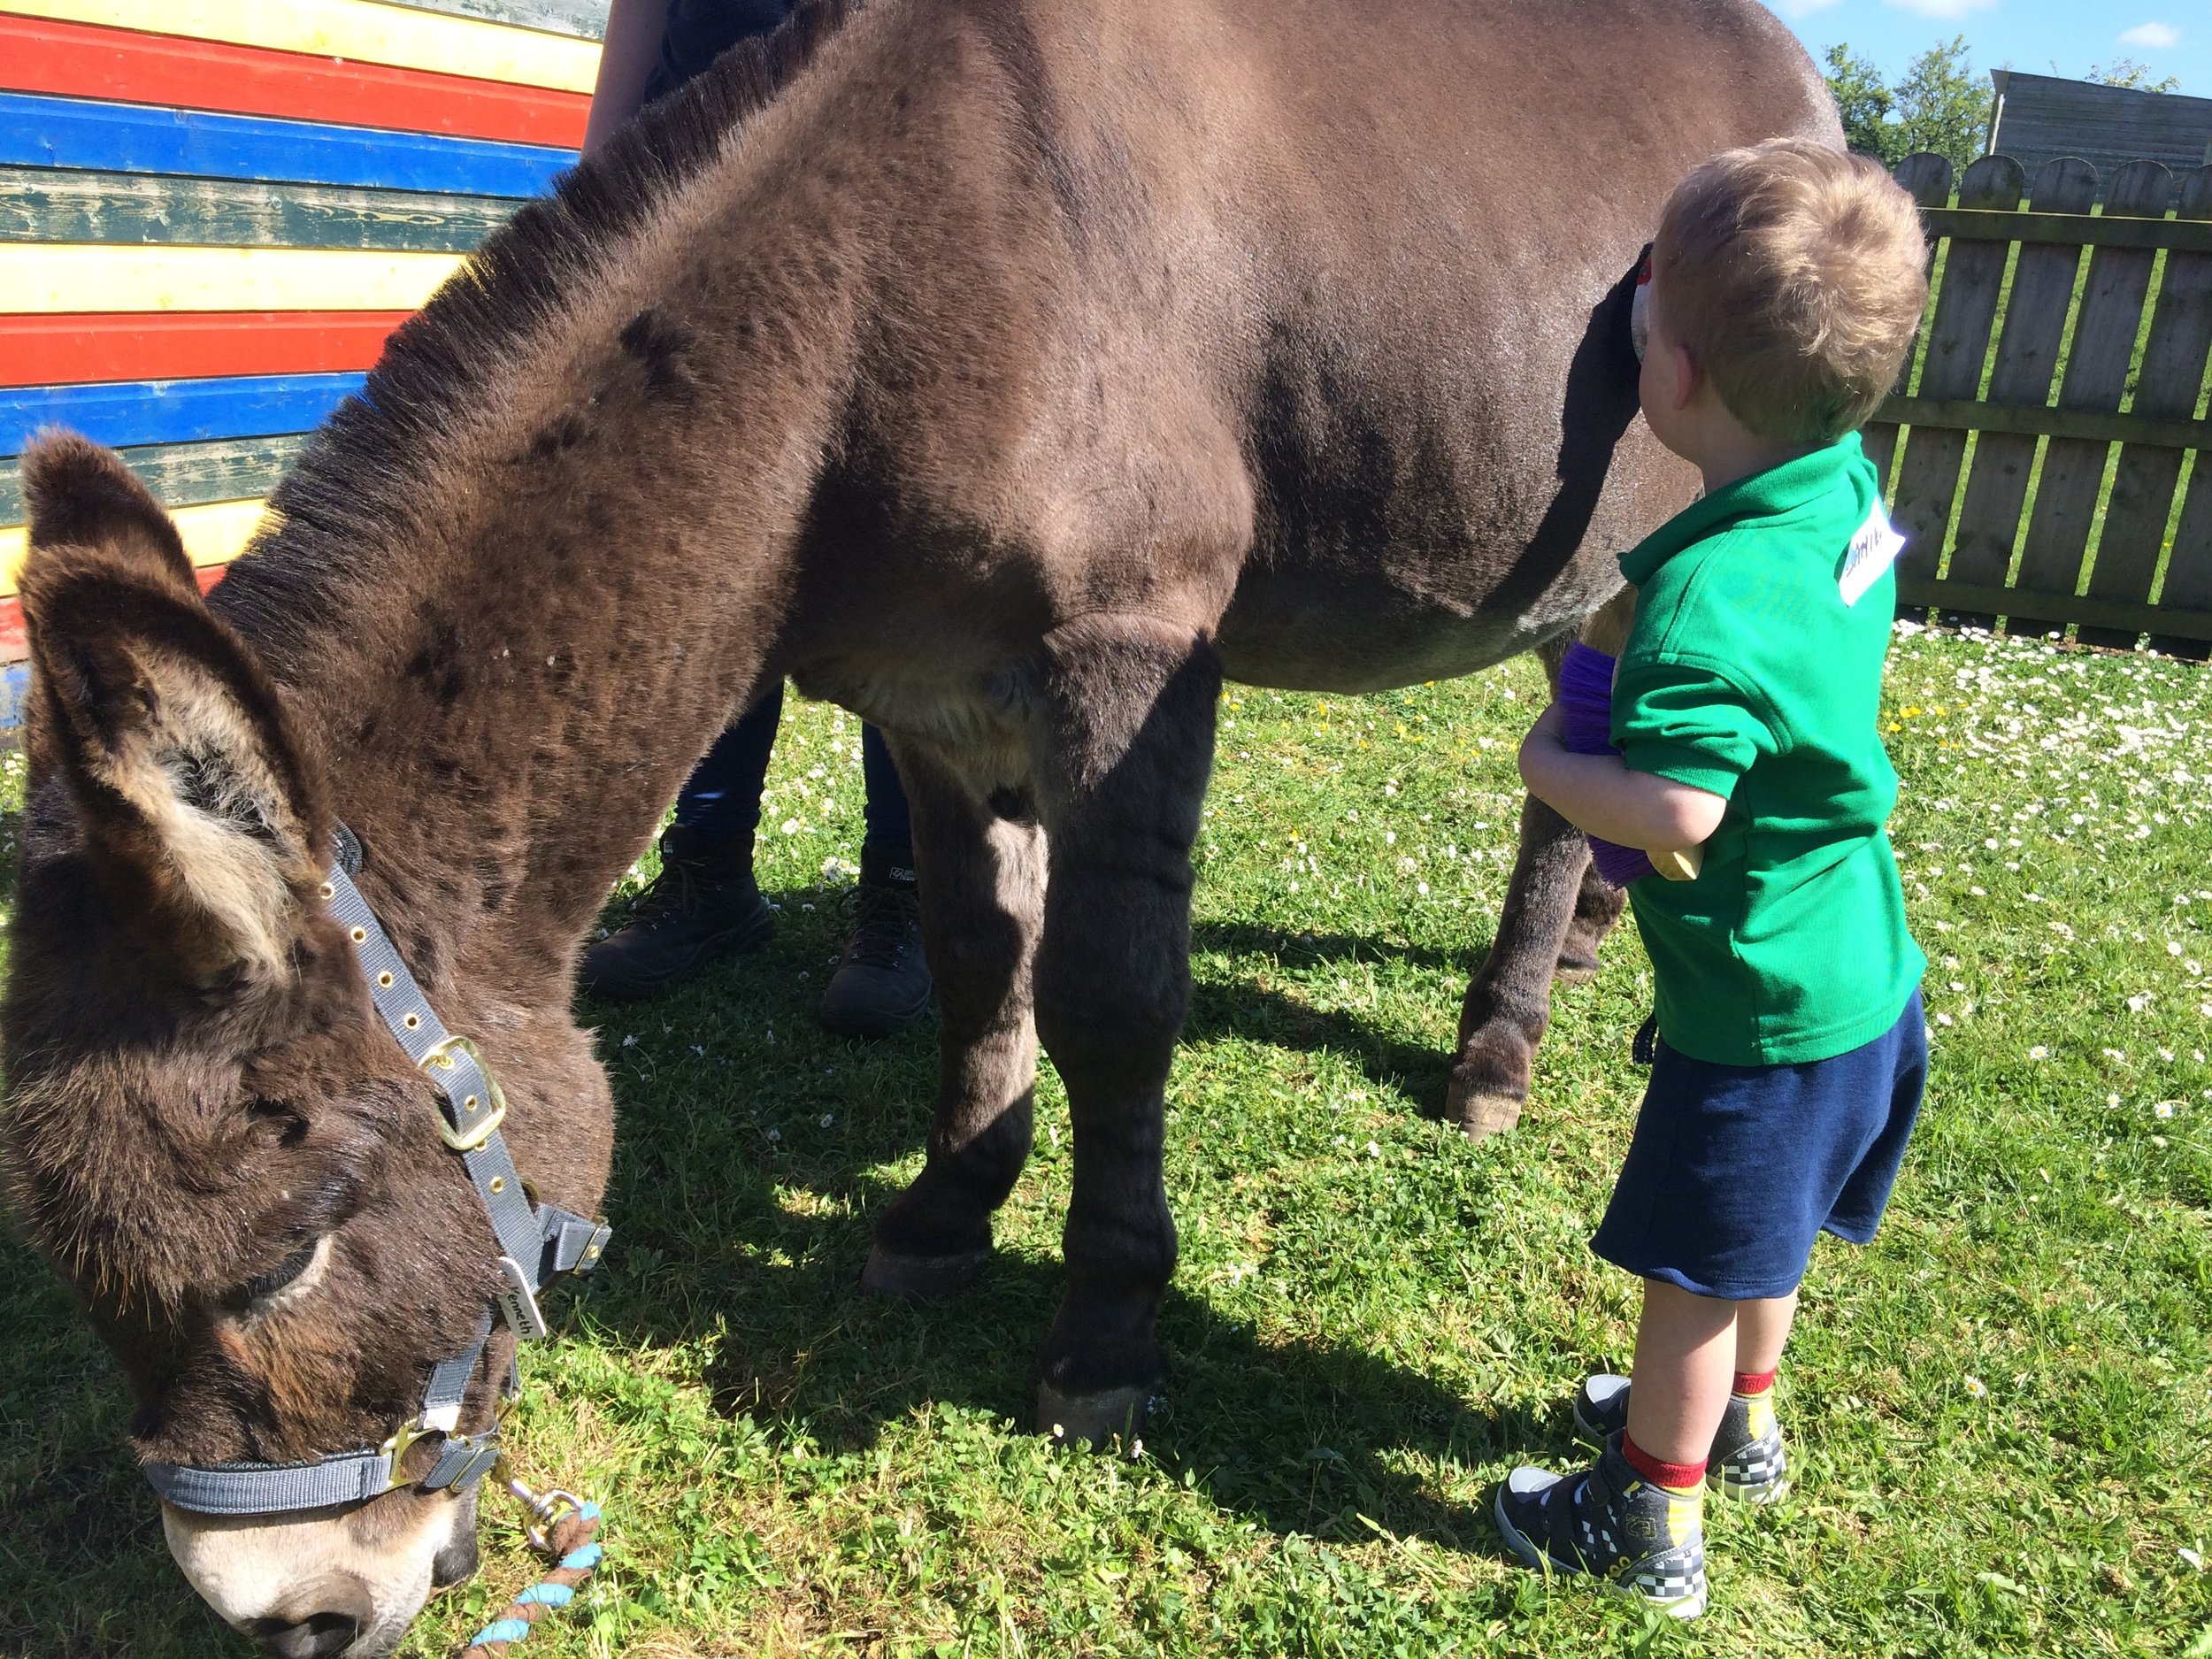 Therapy also involves groundwork like grooming the donkeys or making.their bed